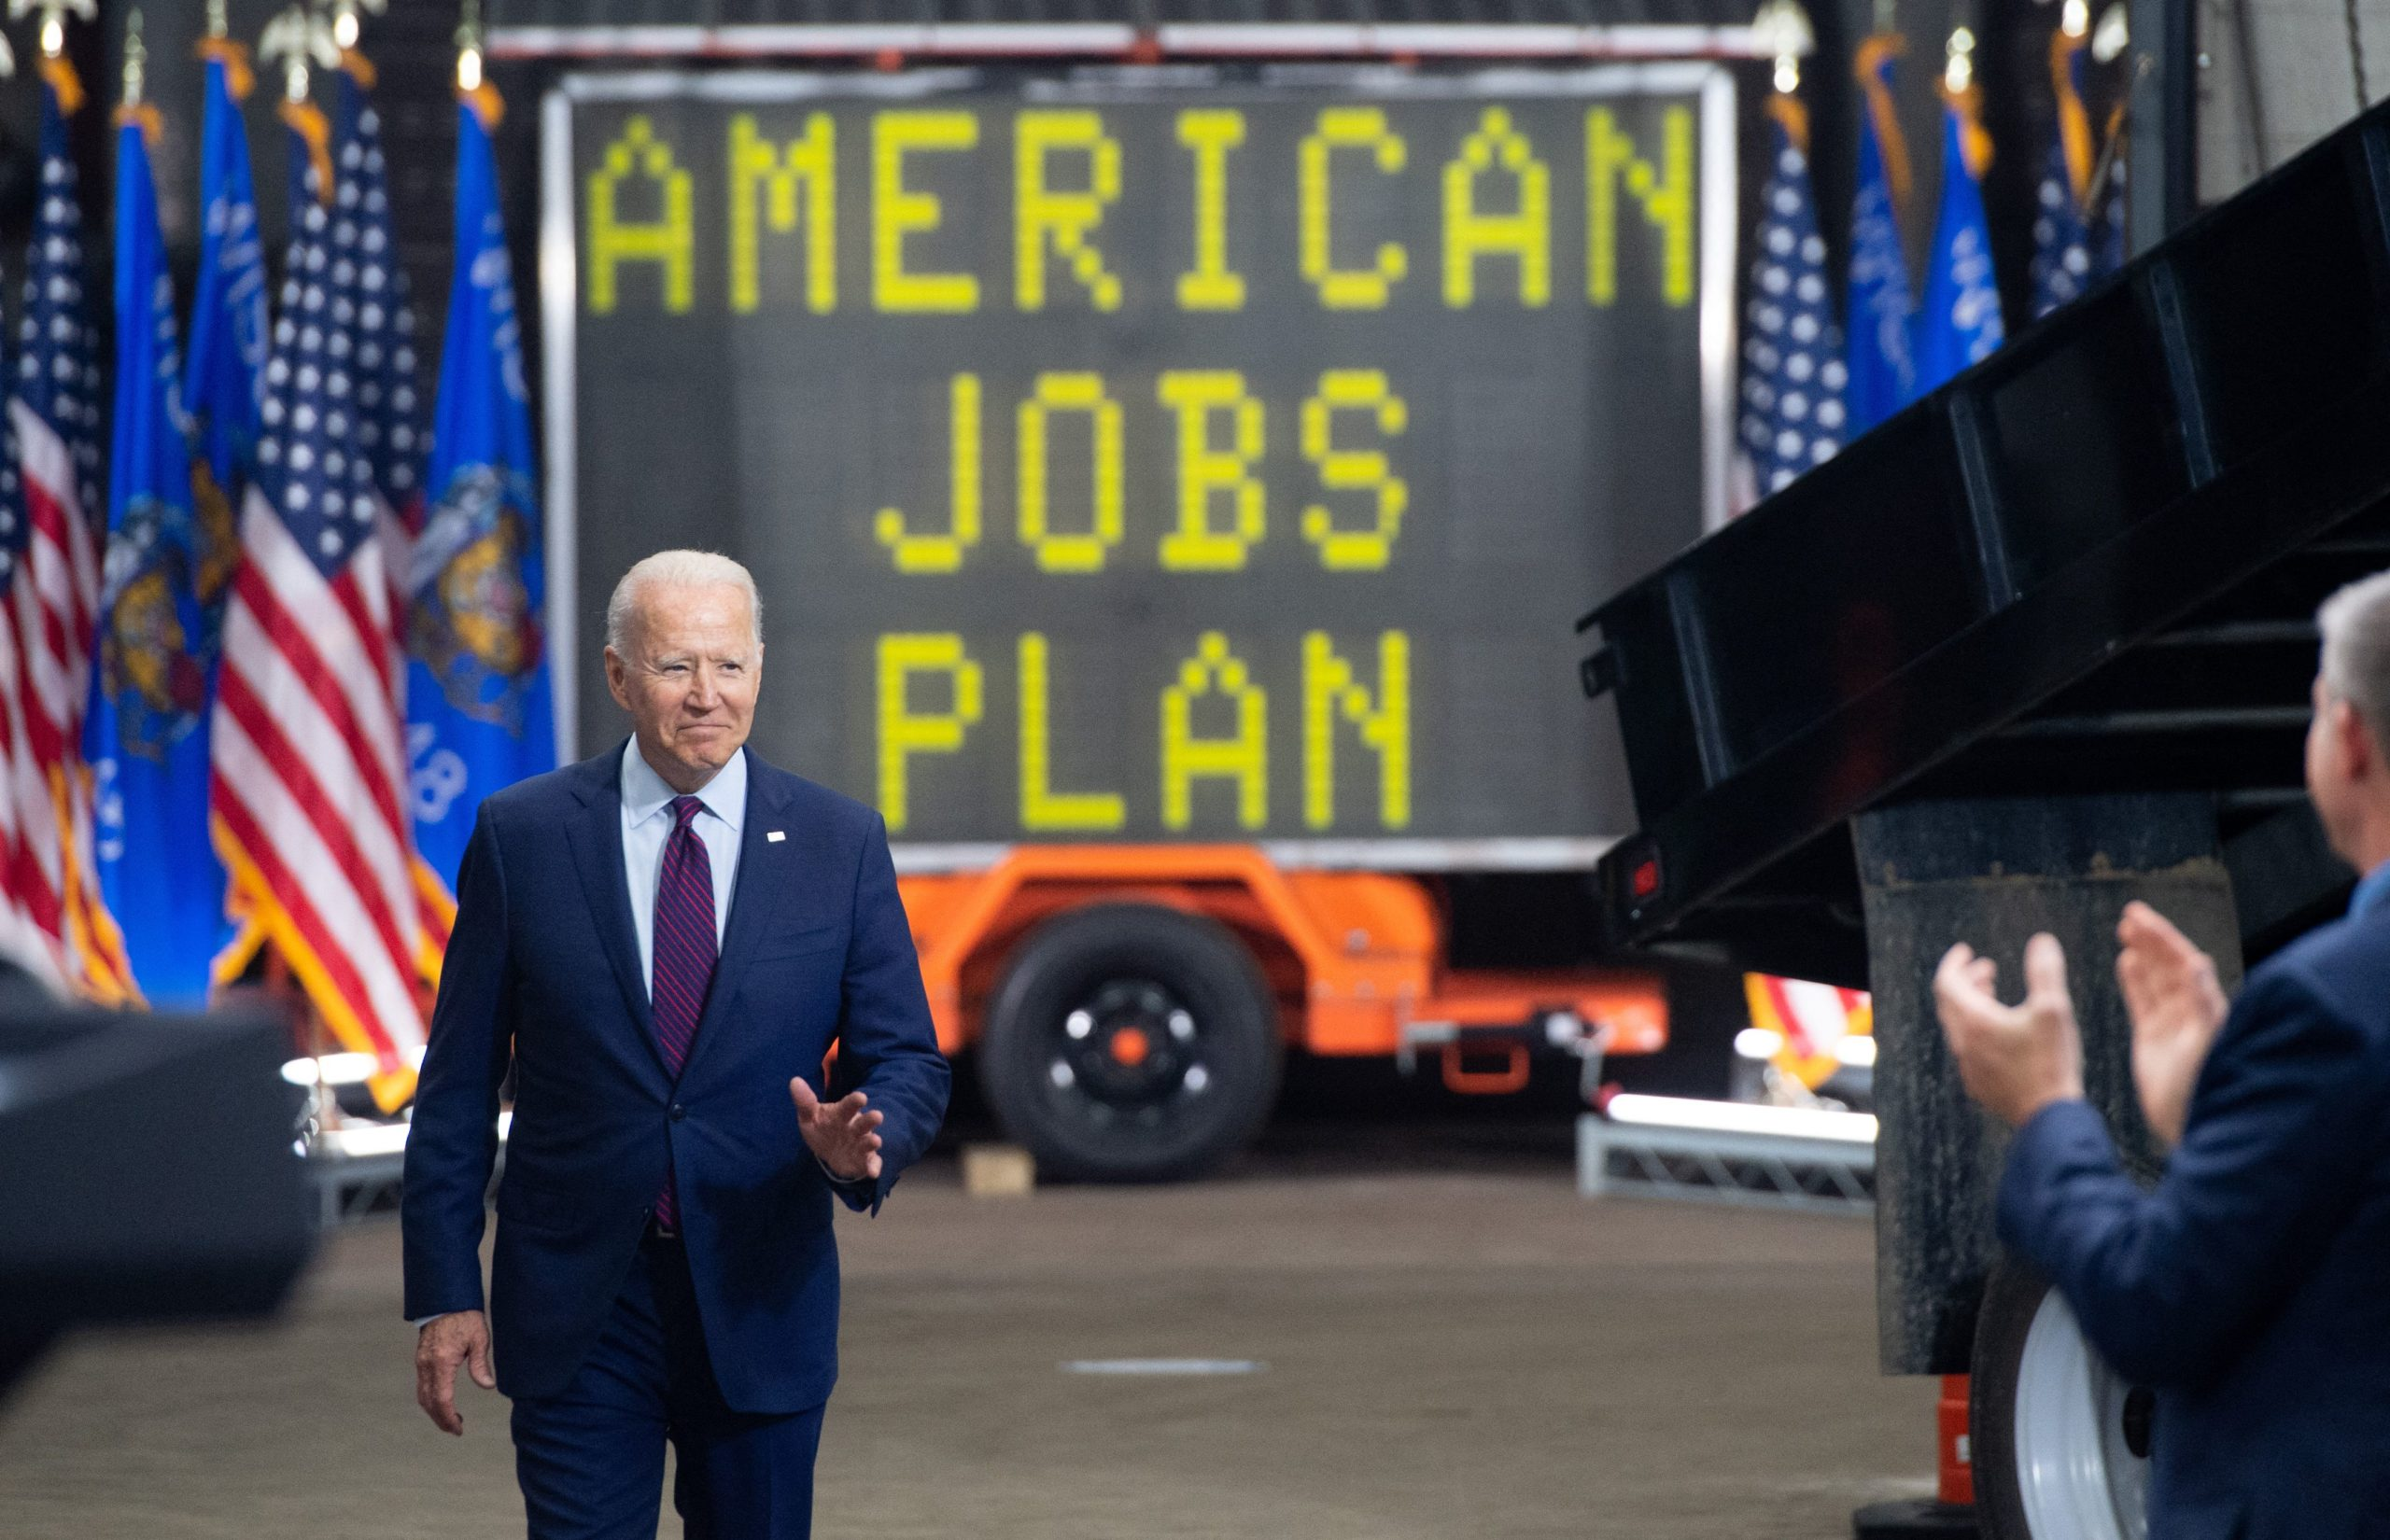 TOPSHOT - US President Joe Biden arrives to speak about the administration's infrastructure plans after touring the La Crosse Municipal Transit Utility in La Crosse, Wisconsin, June 29, 2021. (Photo by SAUL LOEB / AFP) (Photo by SAUL LOEB/AFP via Getty Images)